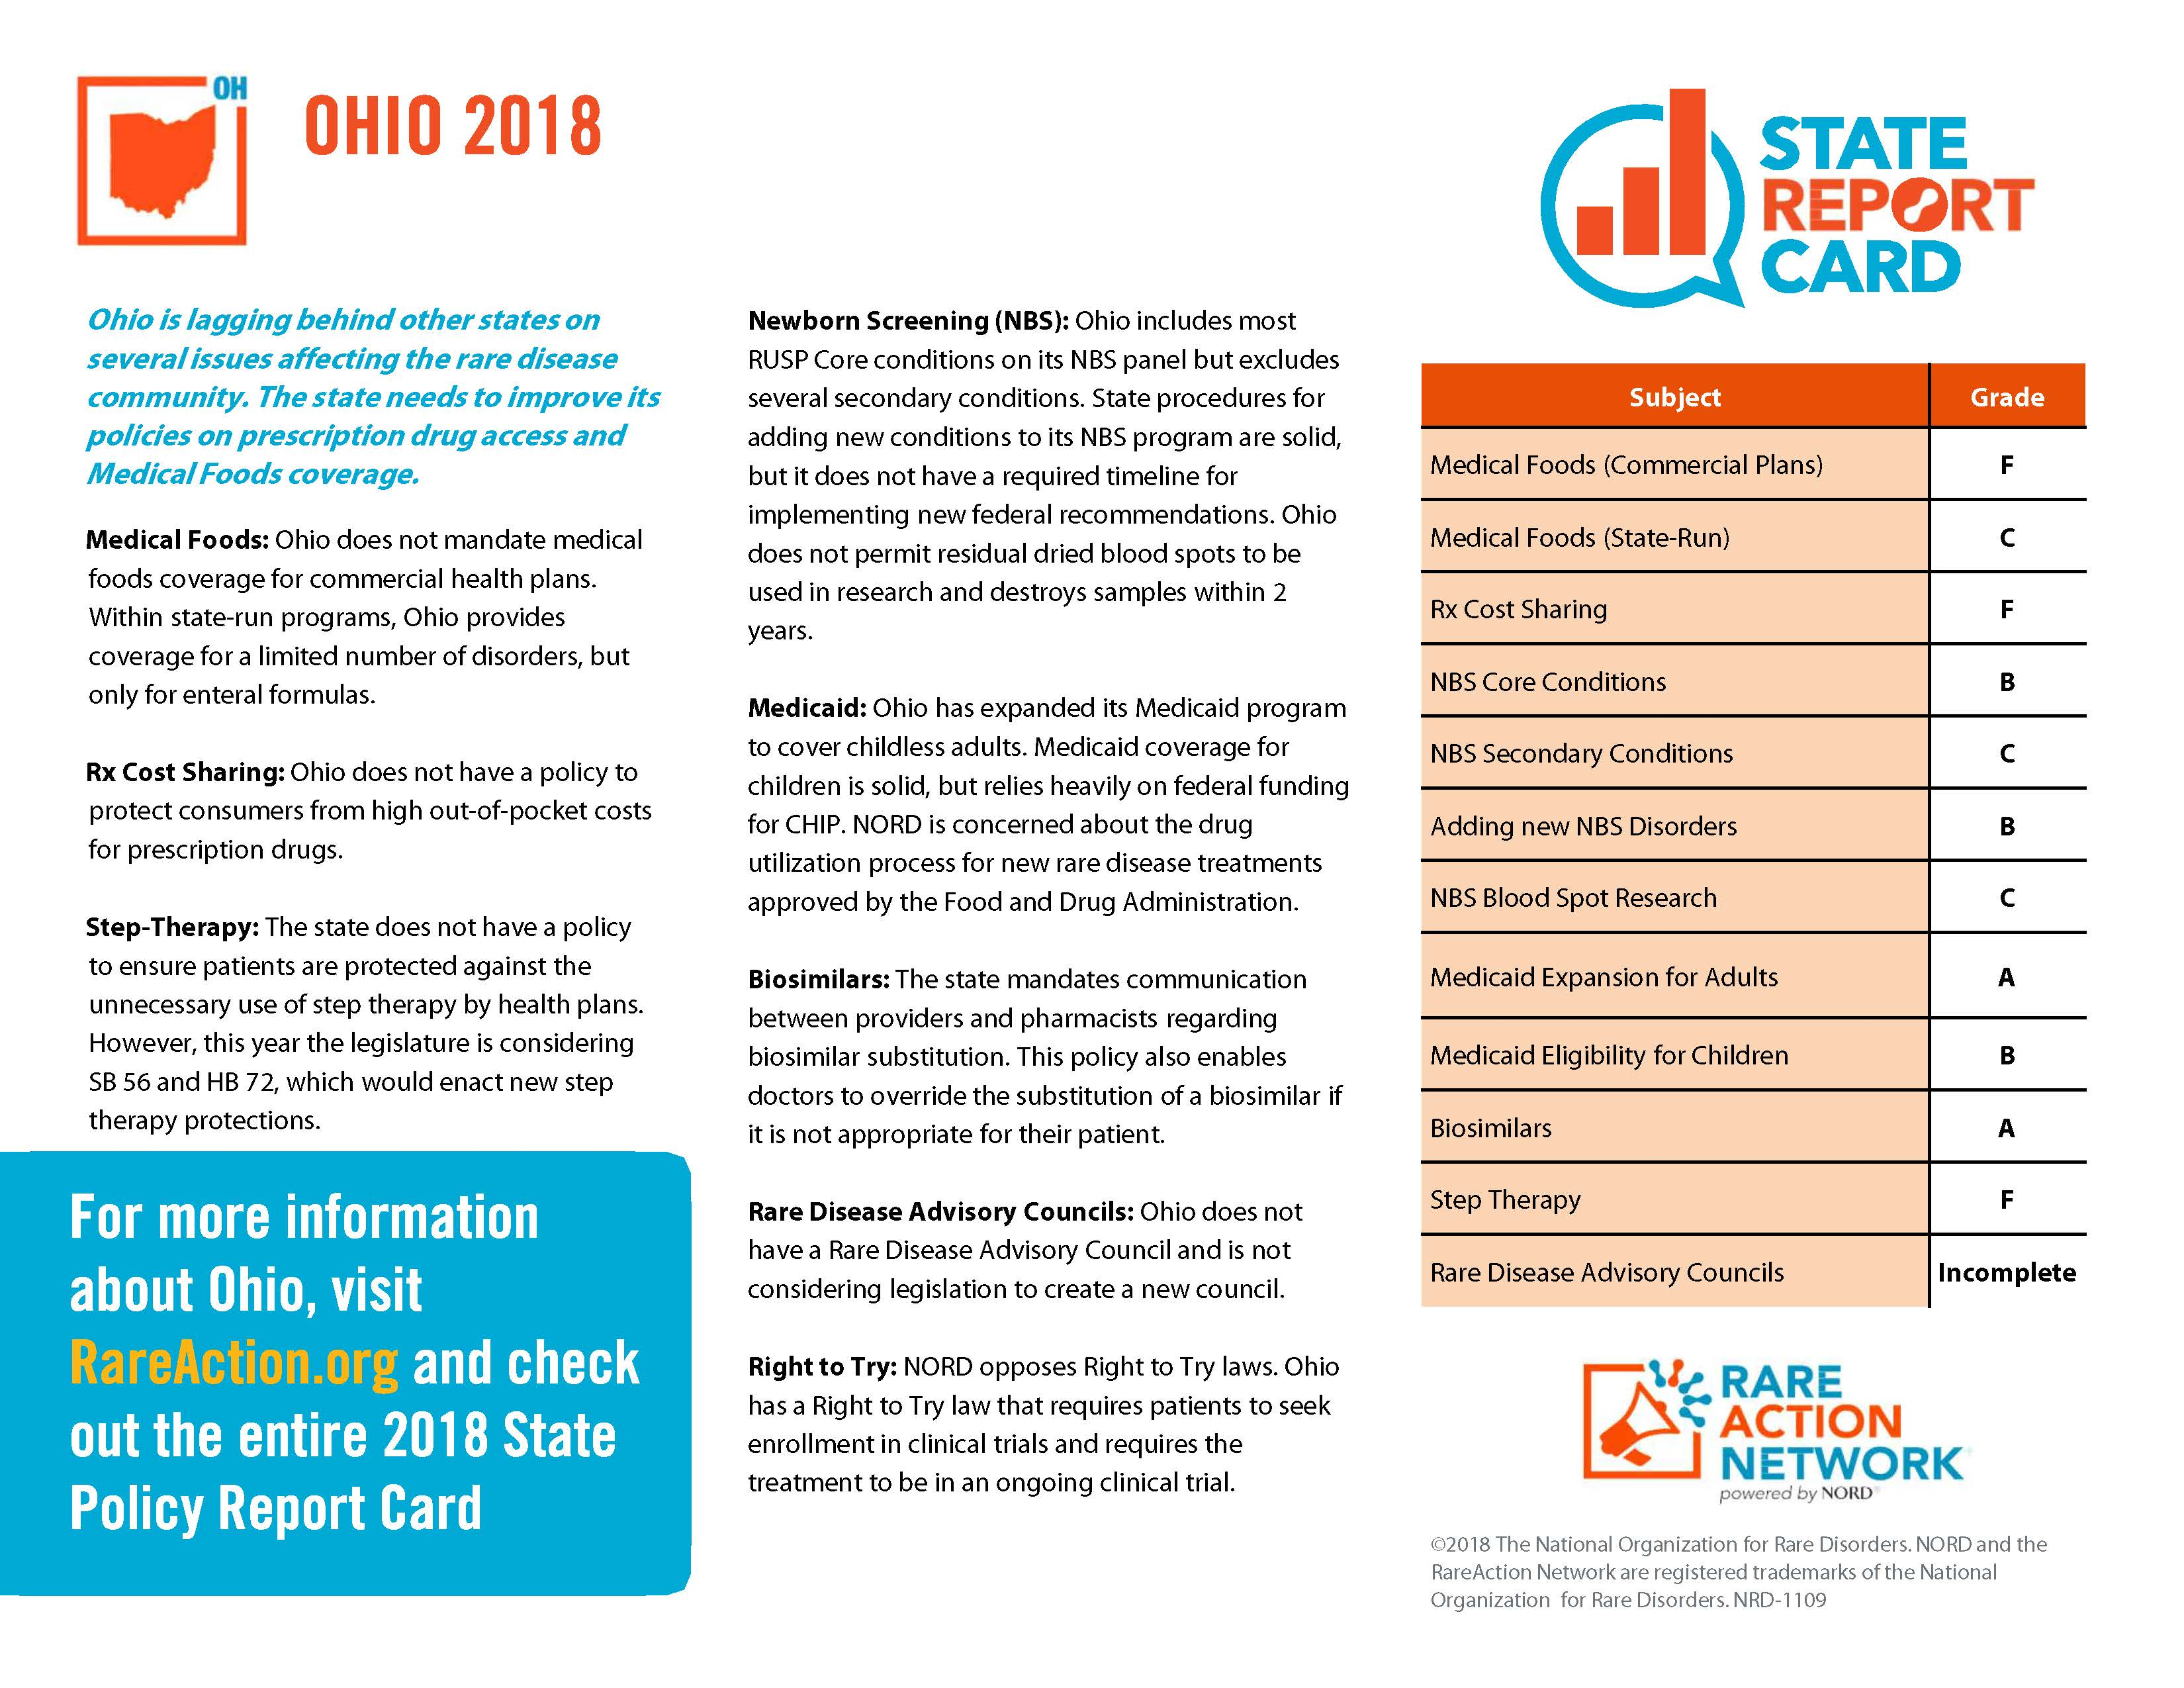 State Report Card_OH